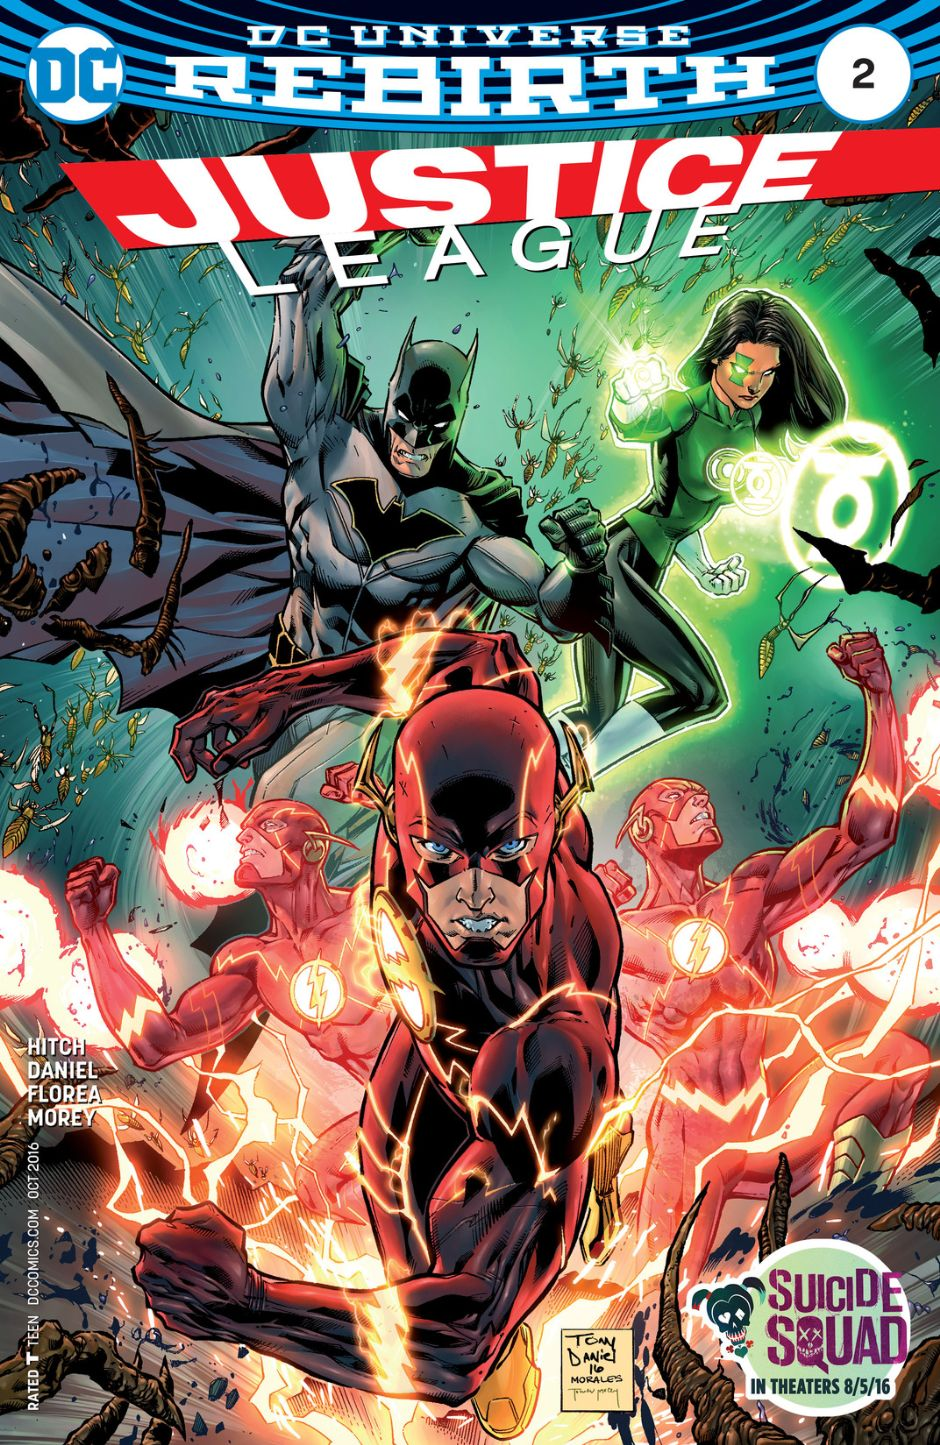 Justice League Vol 3 2   DC Database   FANDOM powered by Wikia